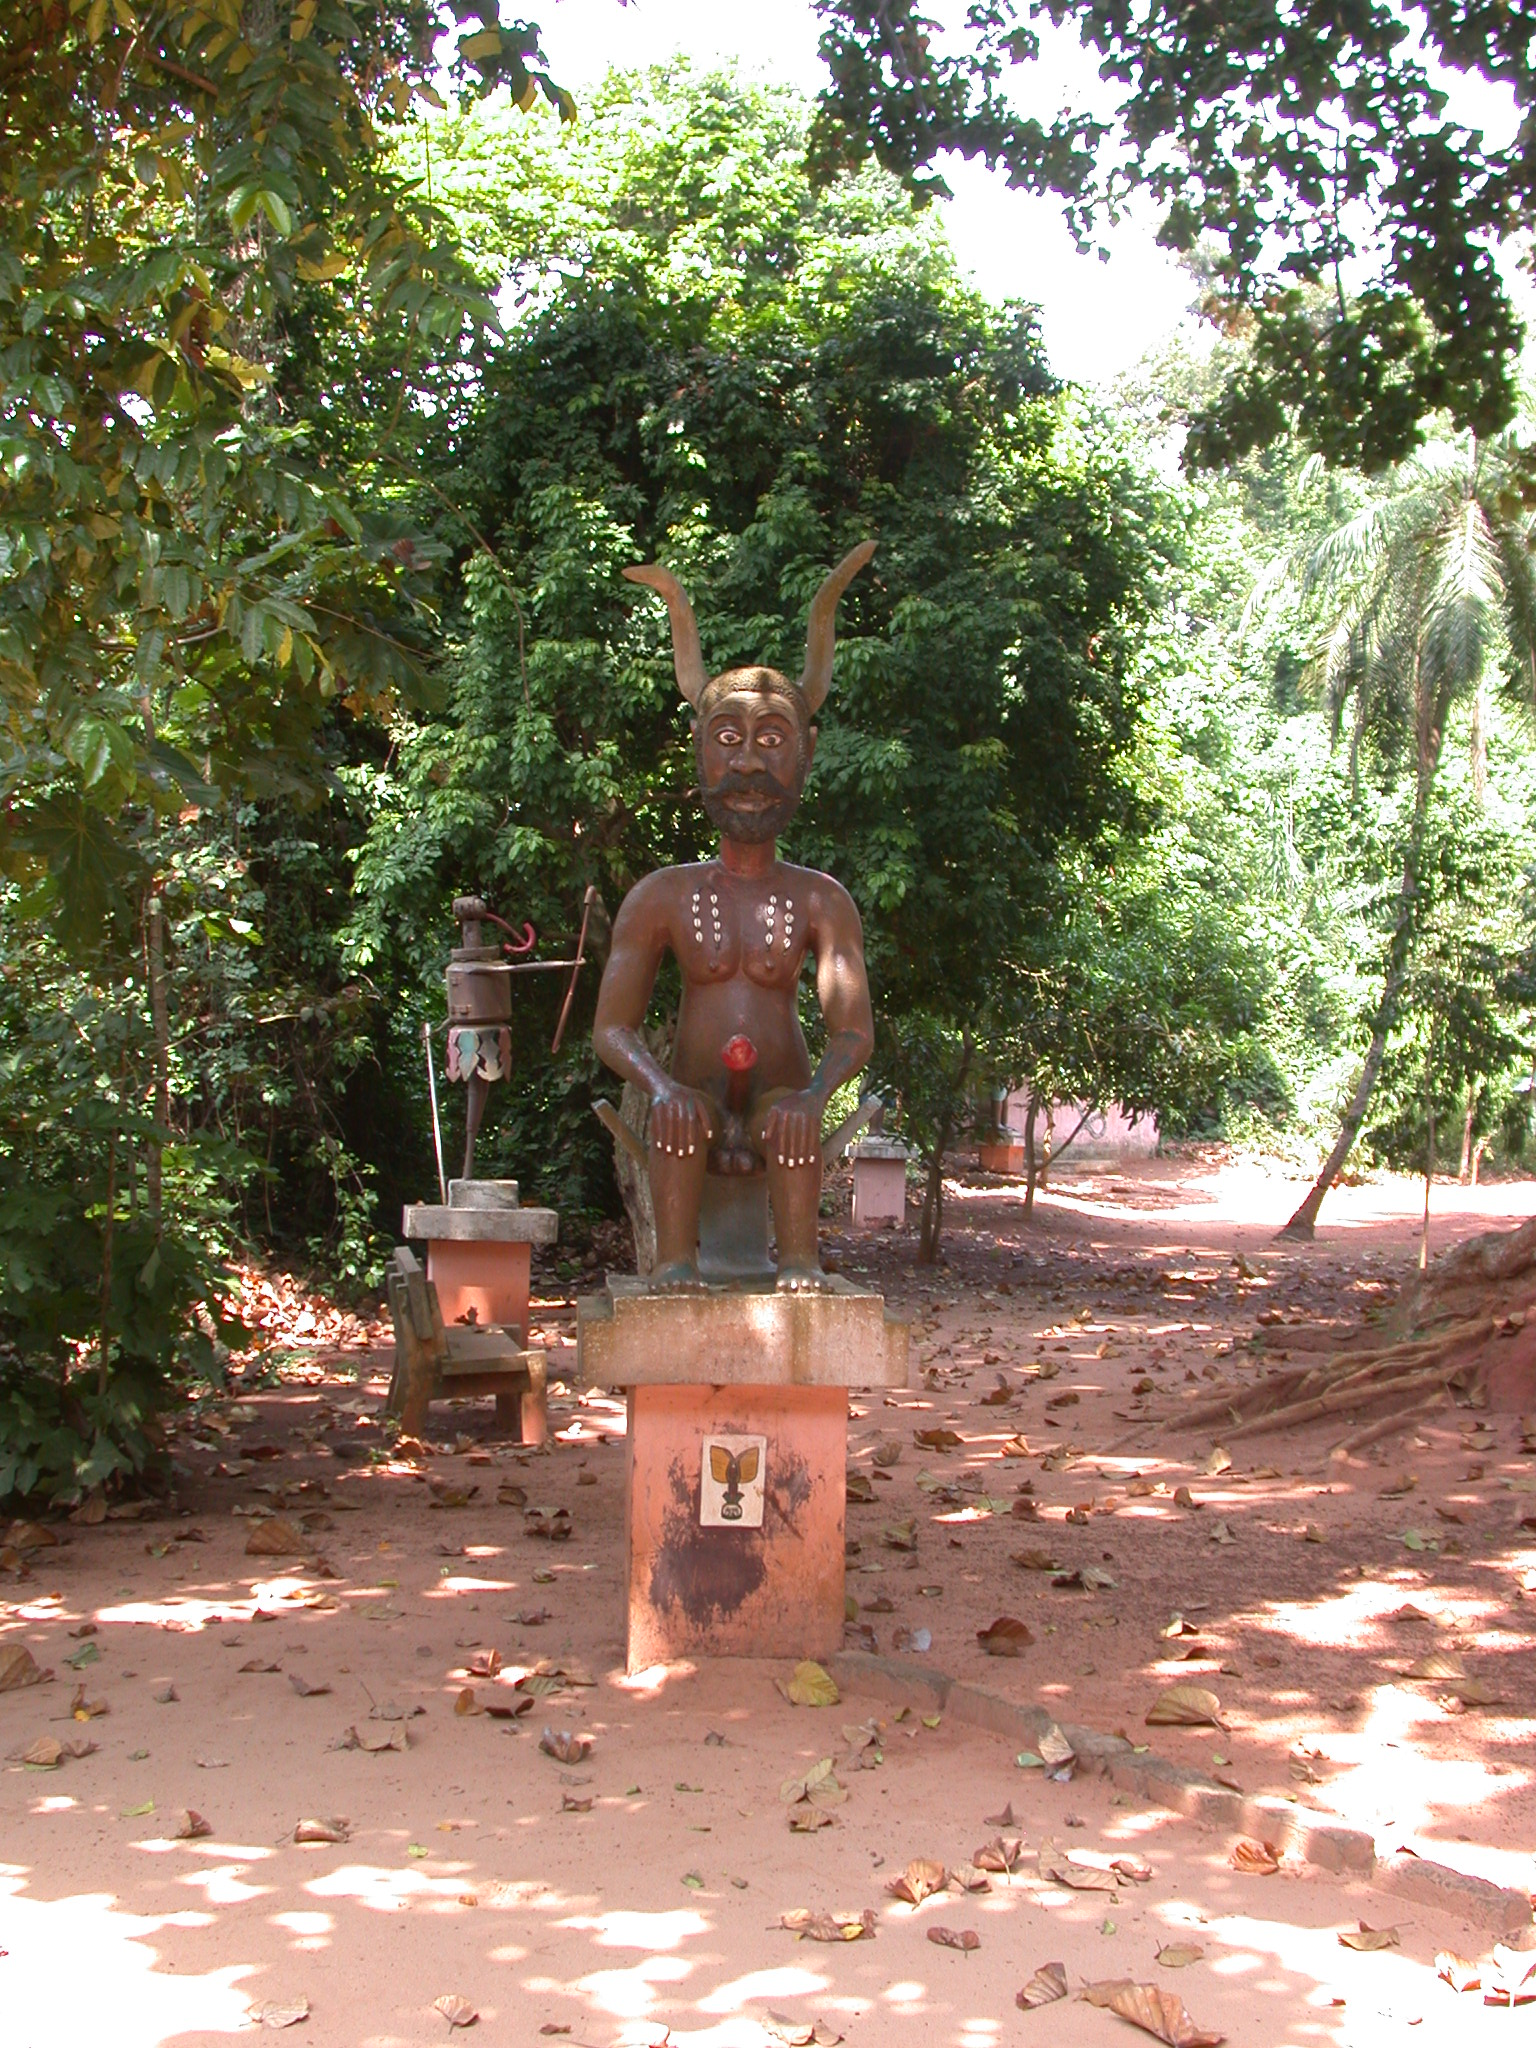 Horned and Phallic Legba Deity Sculpture, Kpasse Sacred Forest, Ouidah, Benin